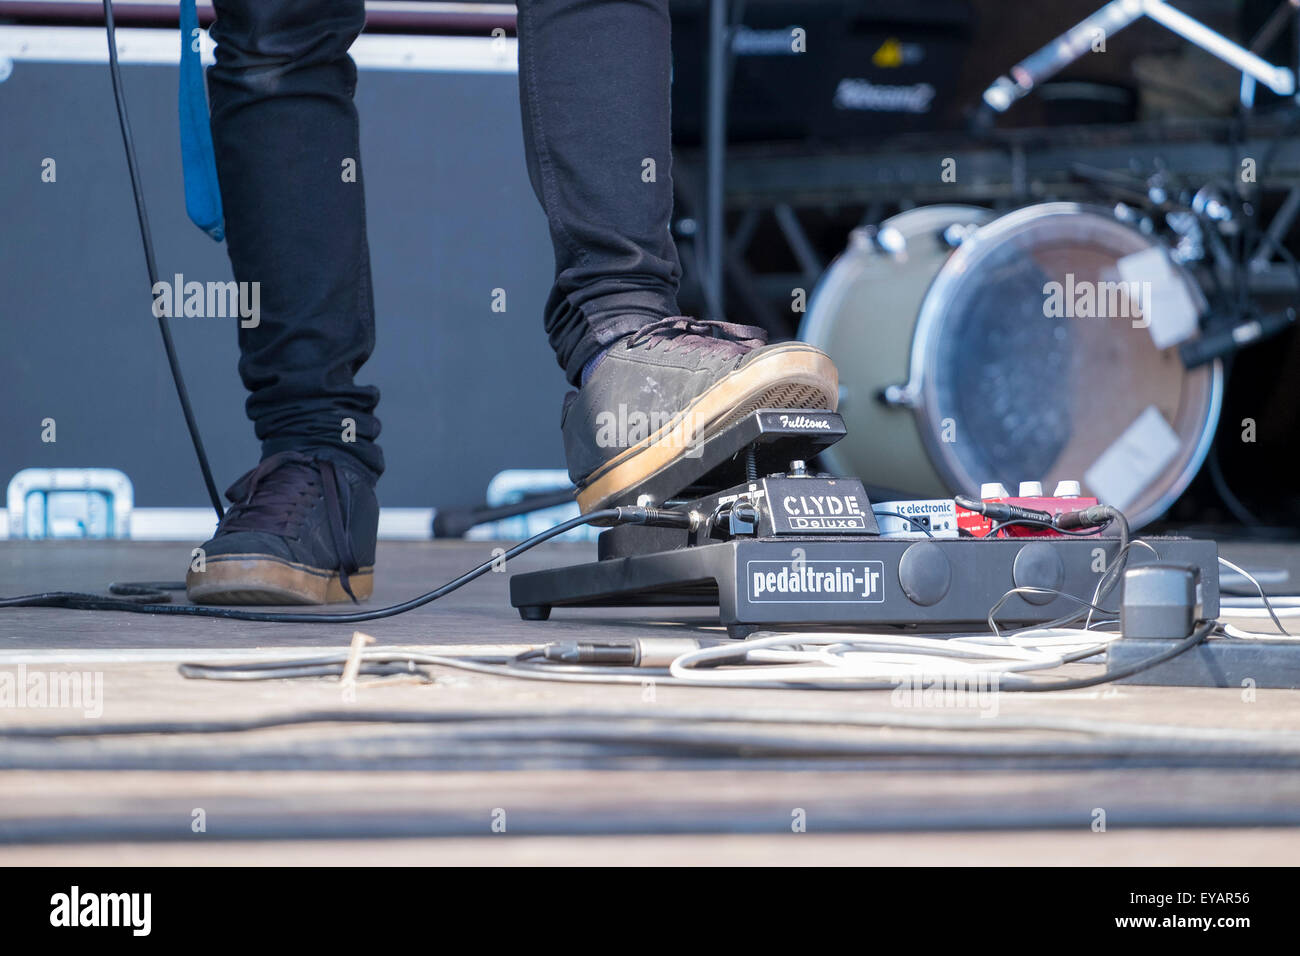 Bognor Regis, West Sussex, UK. 25th July, 2015. The Rox music and arts festival on the seafront at Bognor Regis - Stock Image